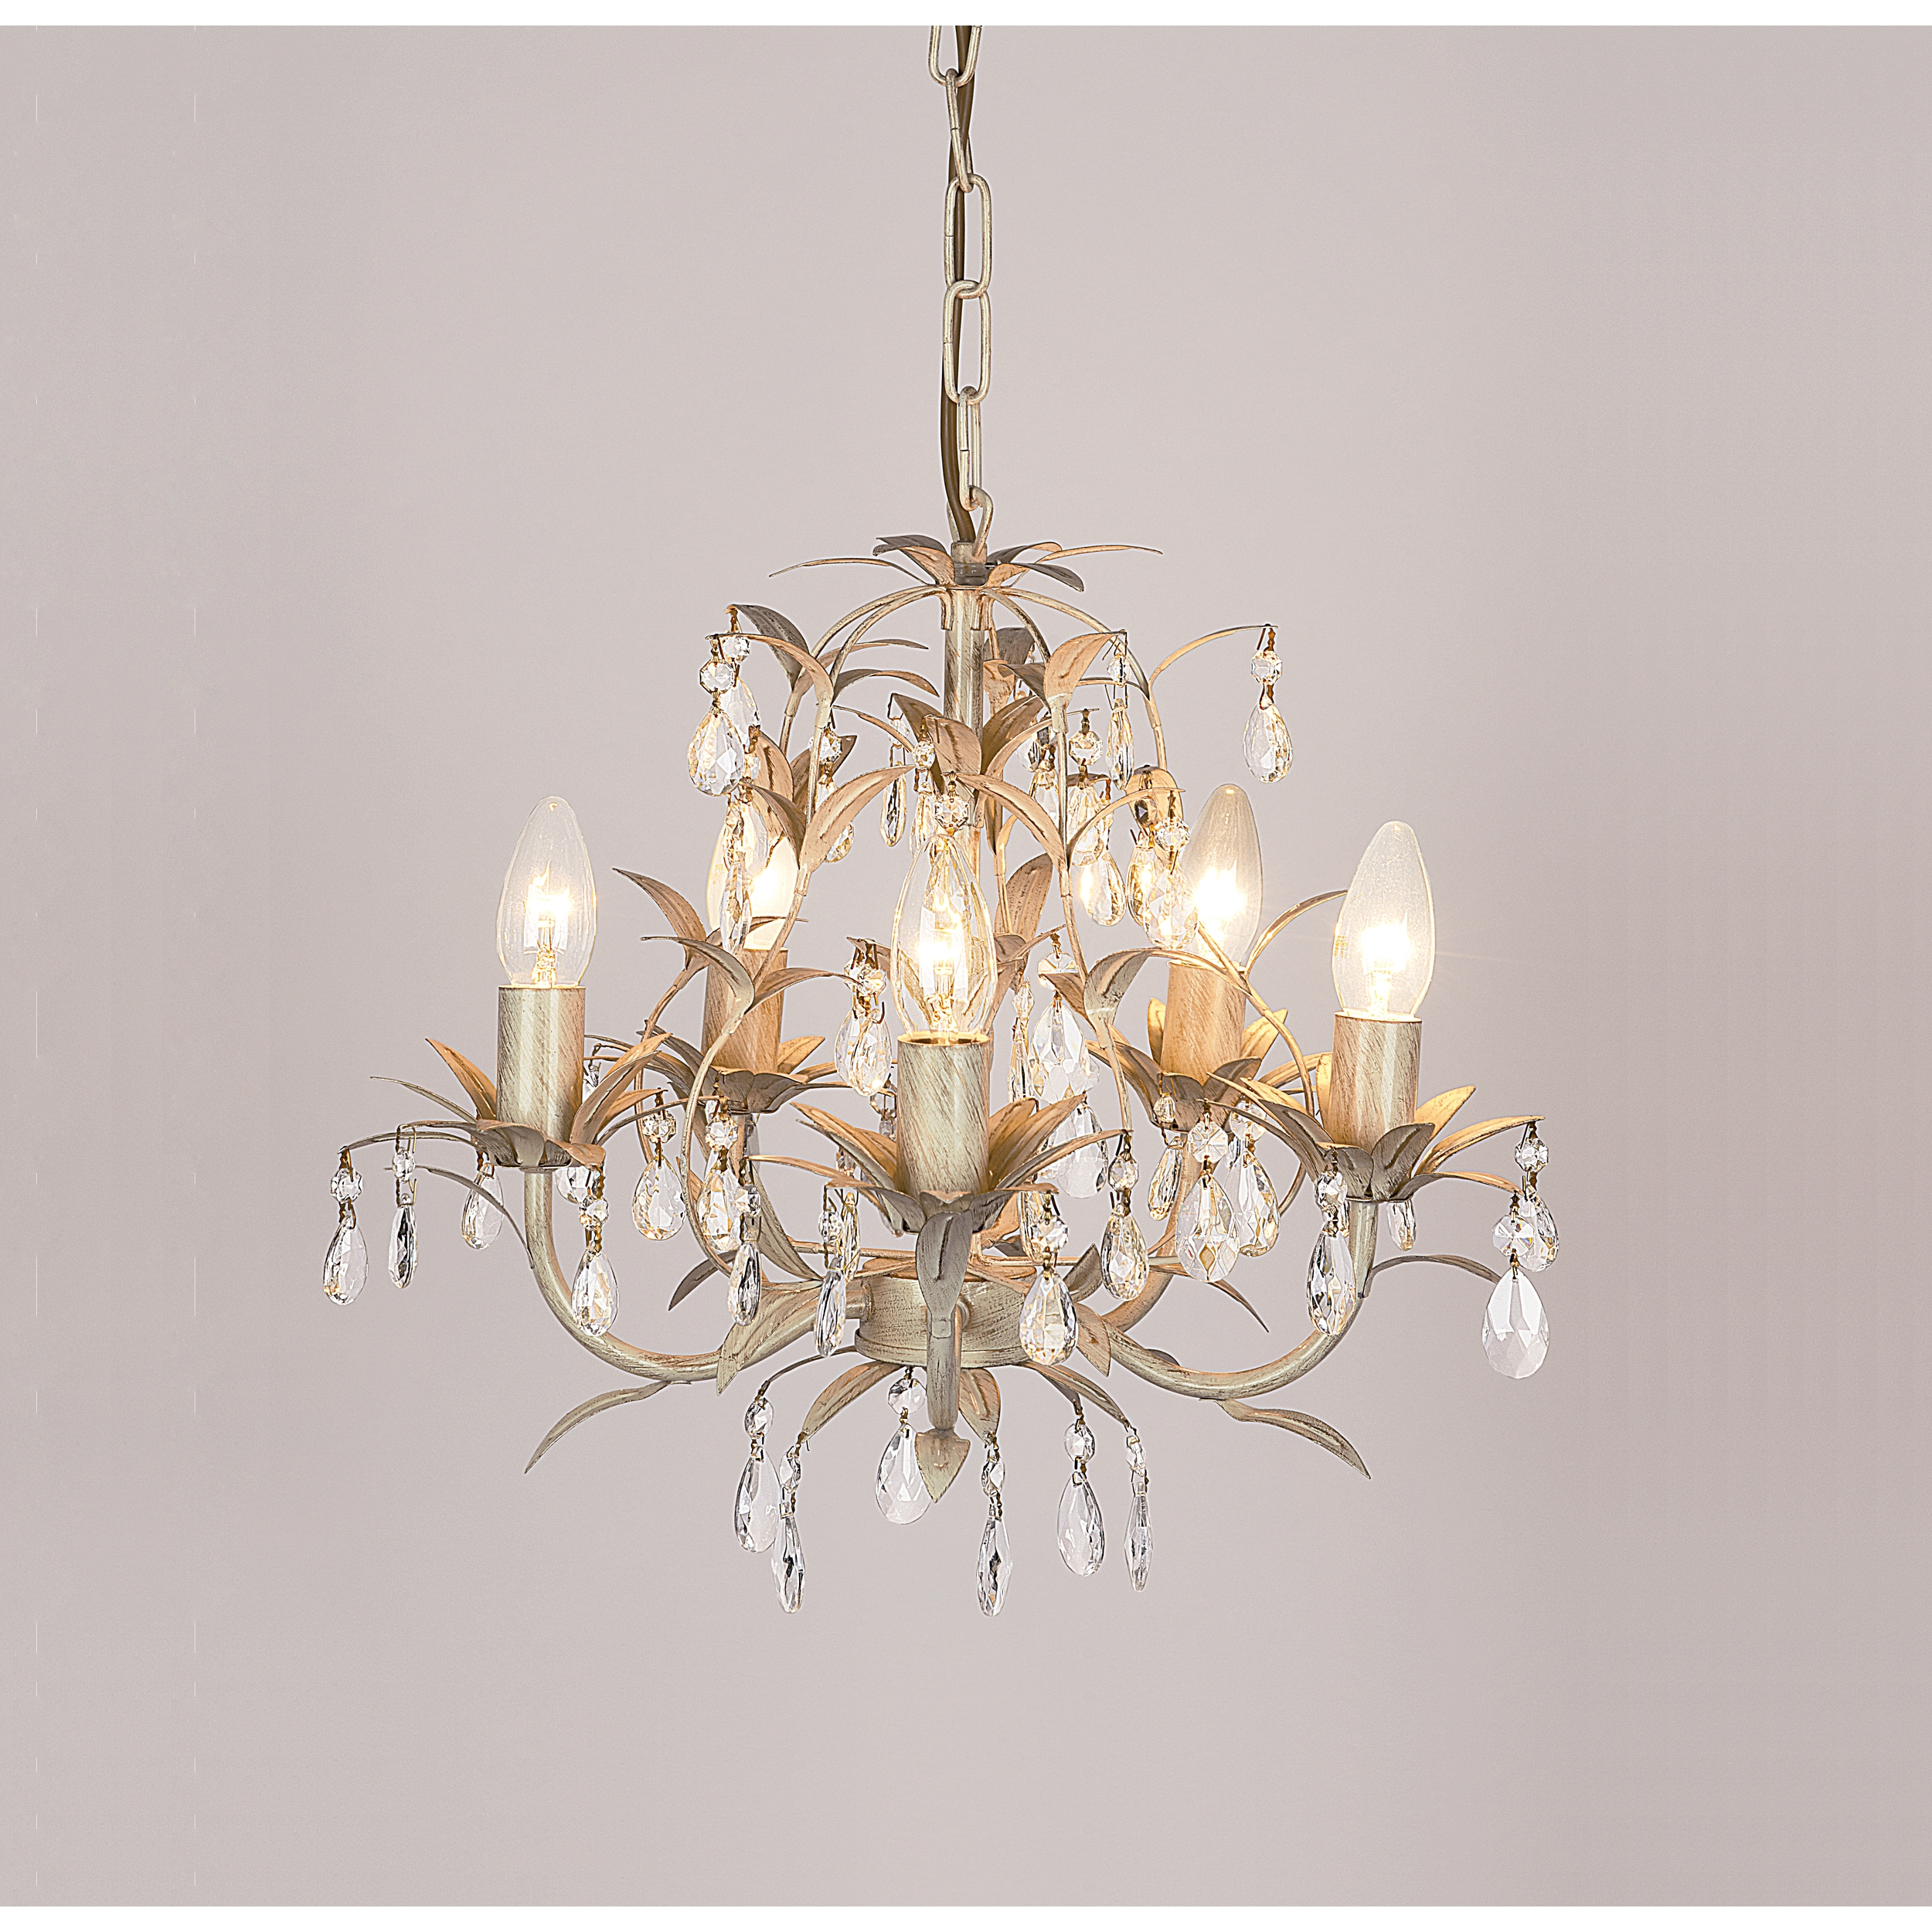 Chella Cream 5 Light Chandelier At Laura Ashley Regarding Cream Chandelier Lights (Image 6 of 15)